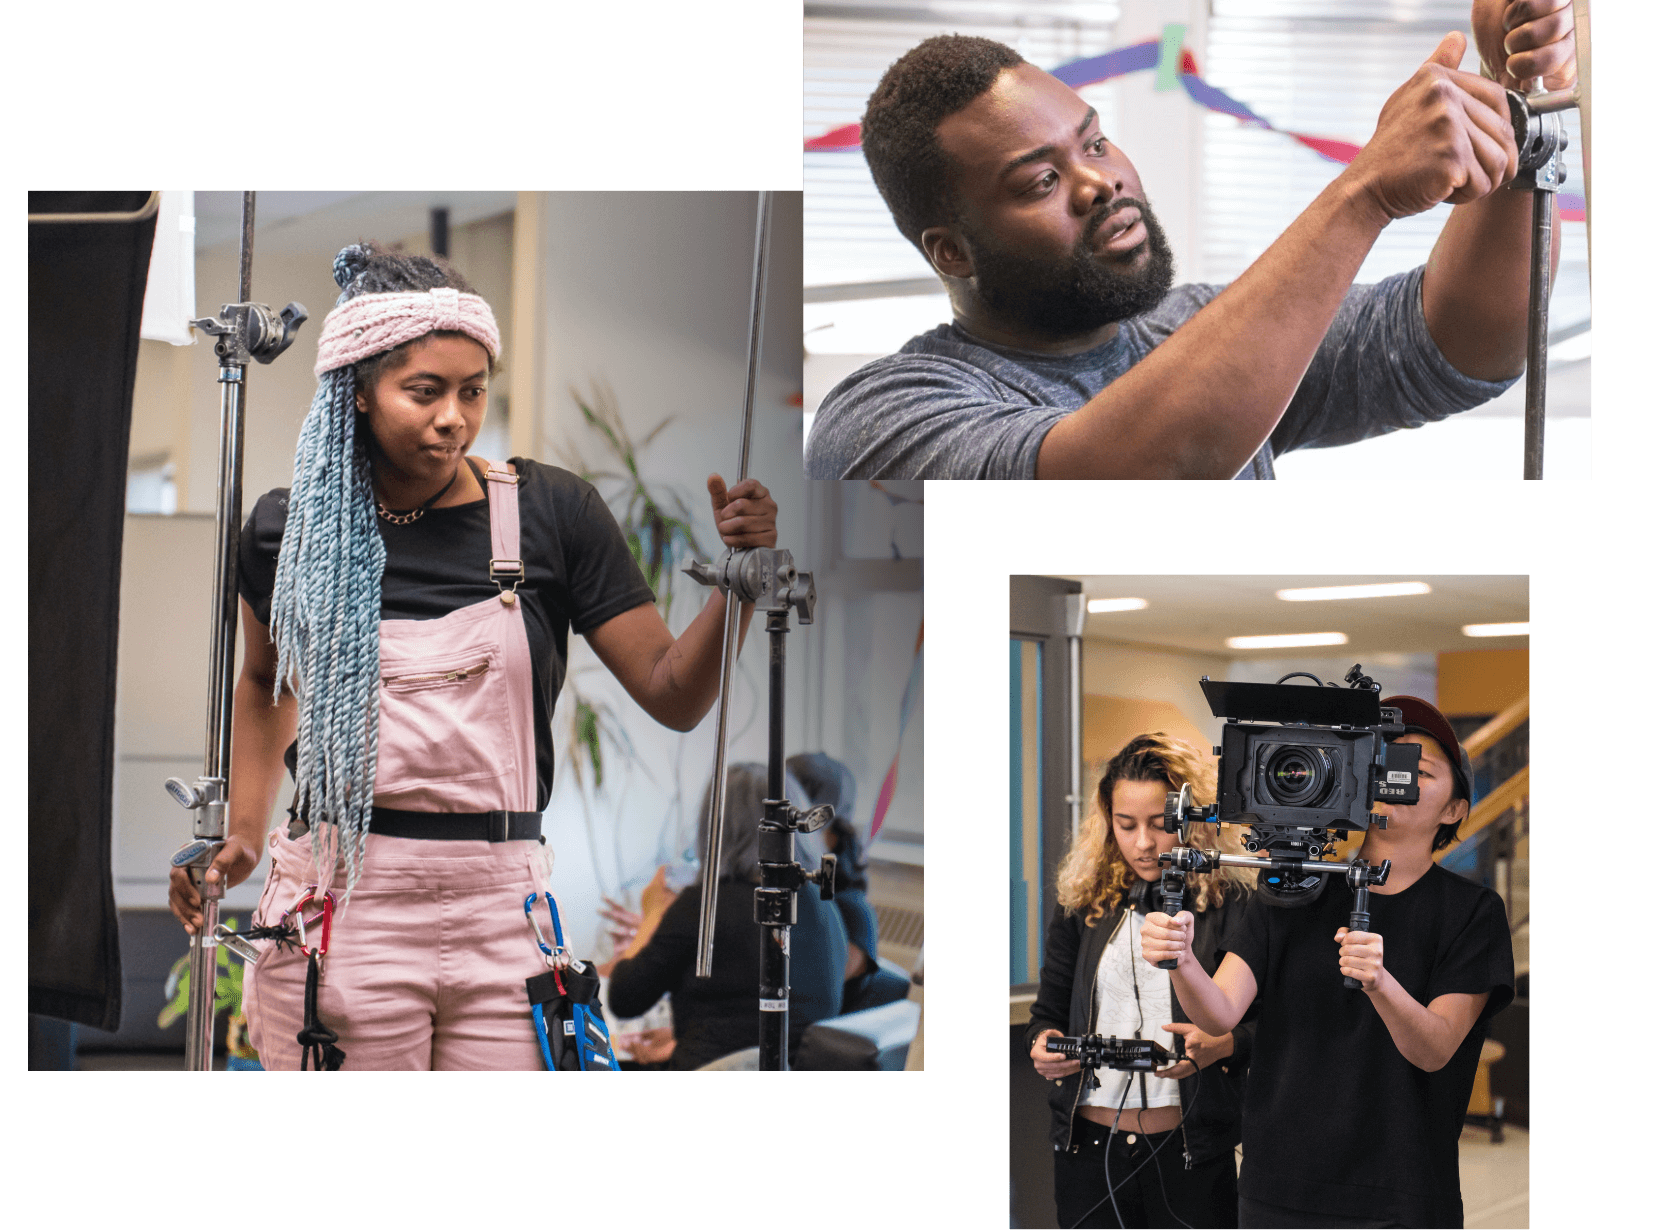 Three images are shown.    One is of a person with colourful locks standing and holding C-stands on set. The second is of a person adjusting grip stand for silks with his hands. The third photo includes two people, one is holding a camera with a shoulder rig in both hands. The second person in this photo is viewing the footage on a small monitor.